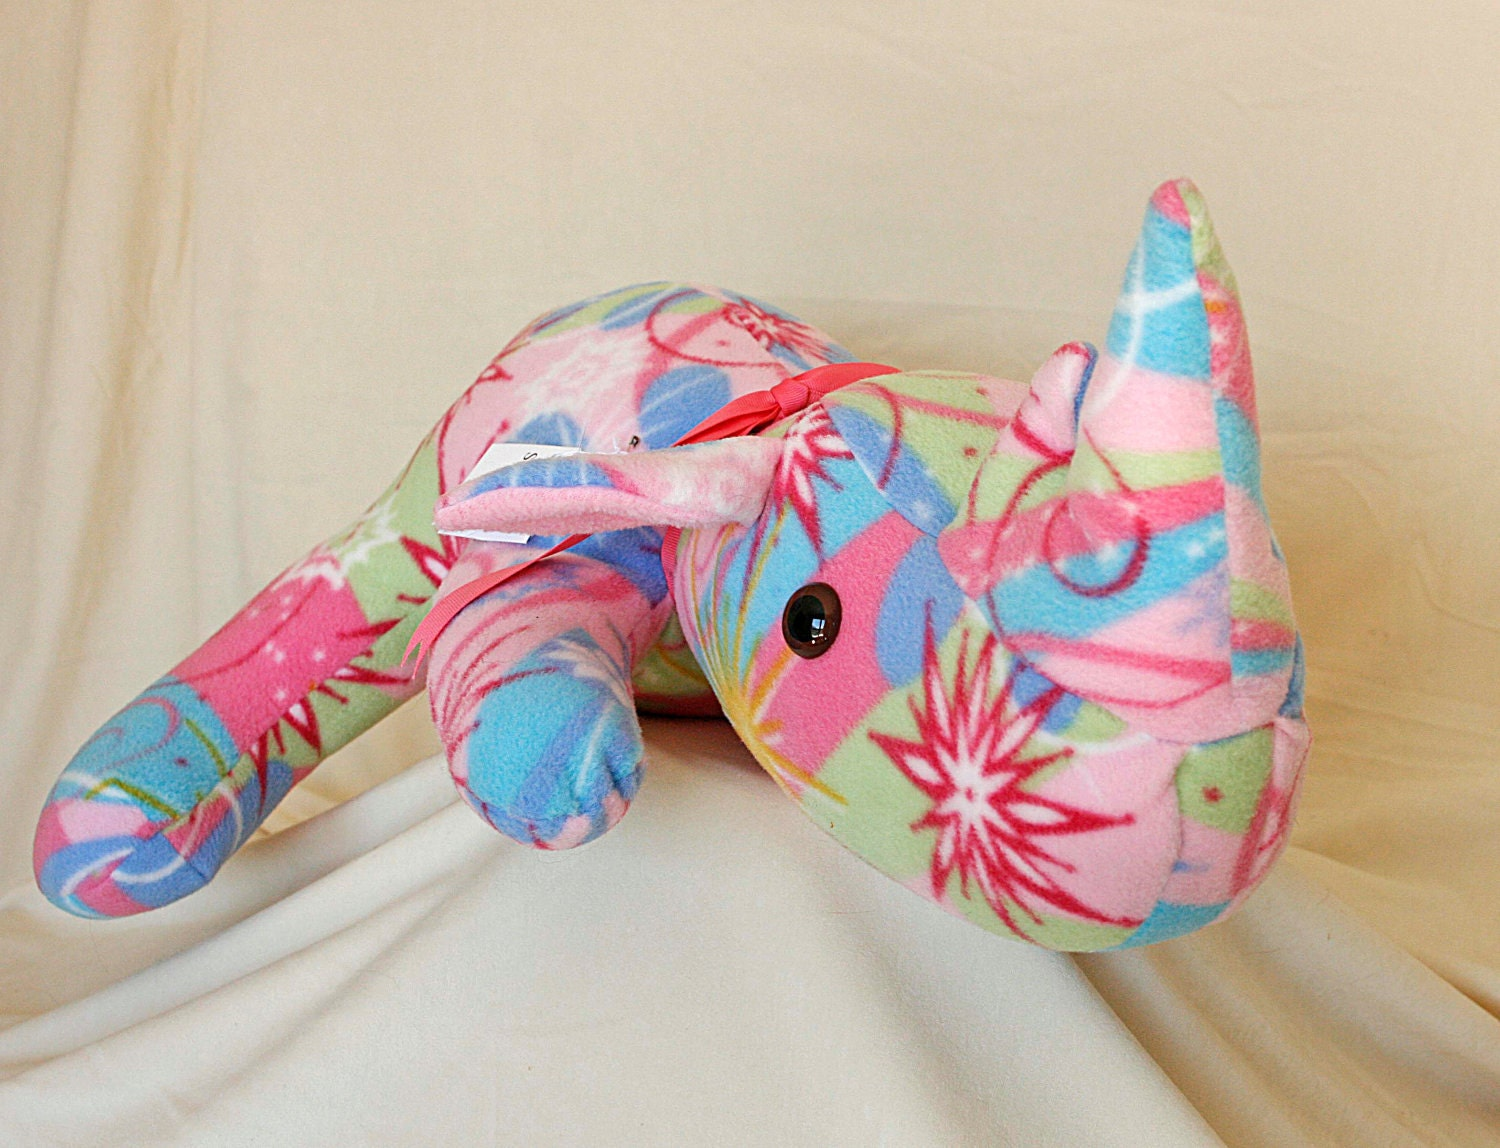 Pinkie the Rhino, Animal Toys, Stuffed Animals - sallyressler